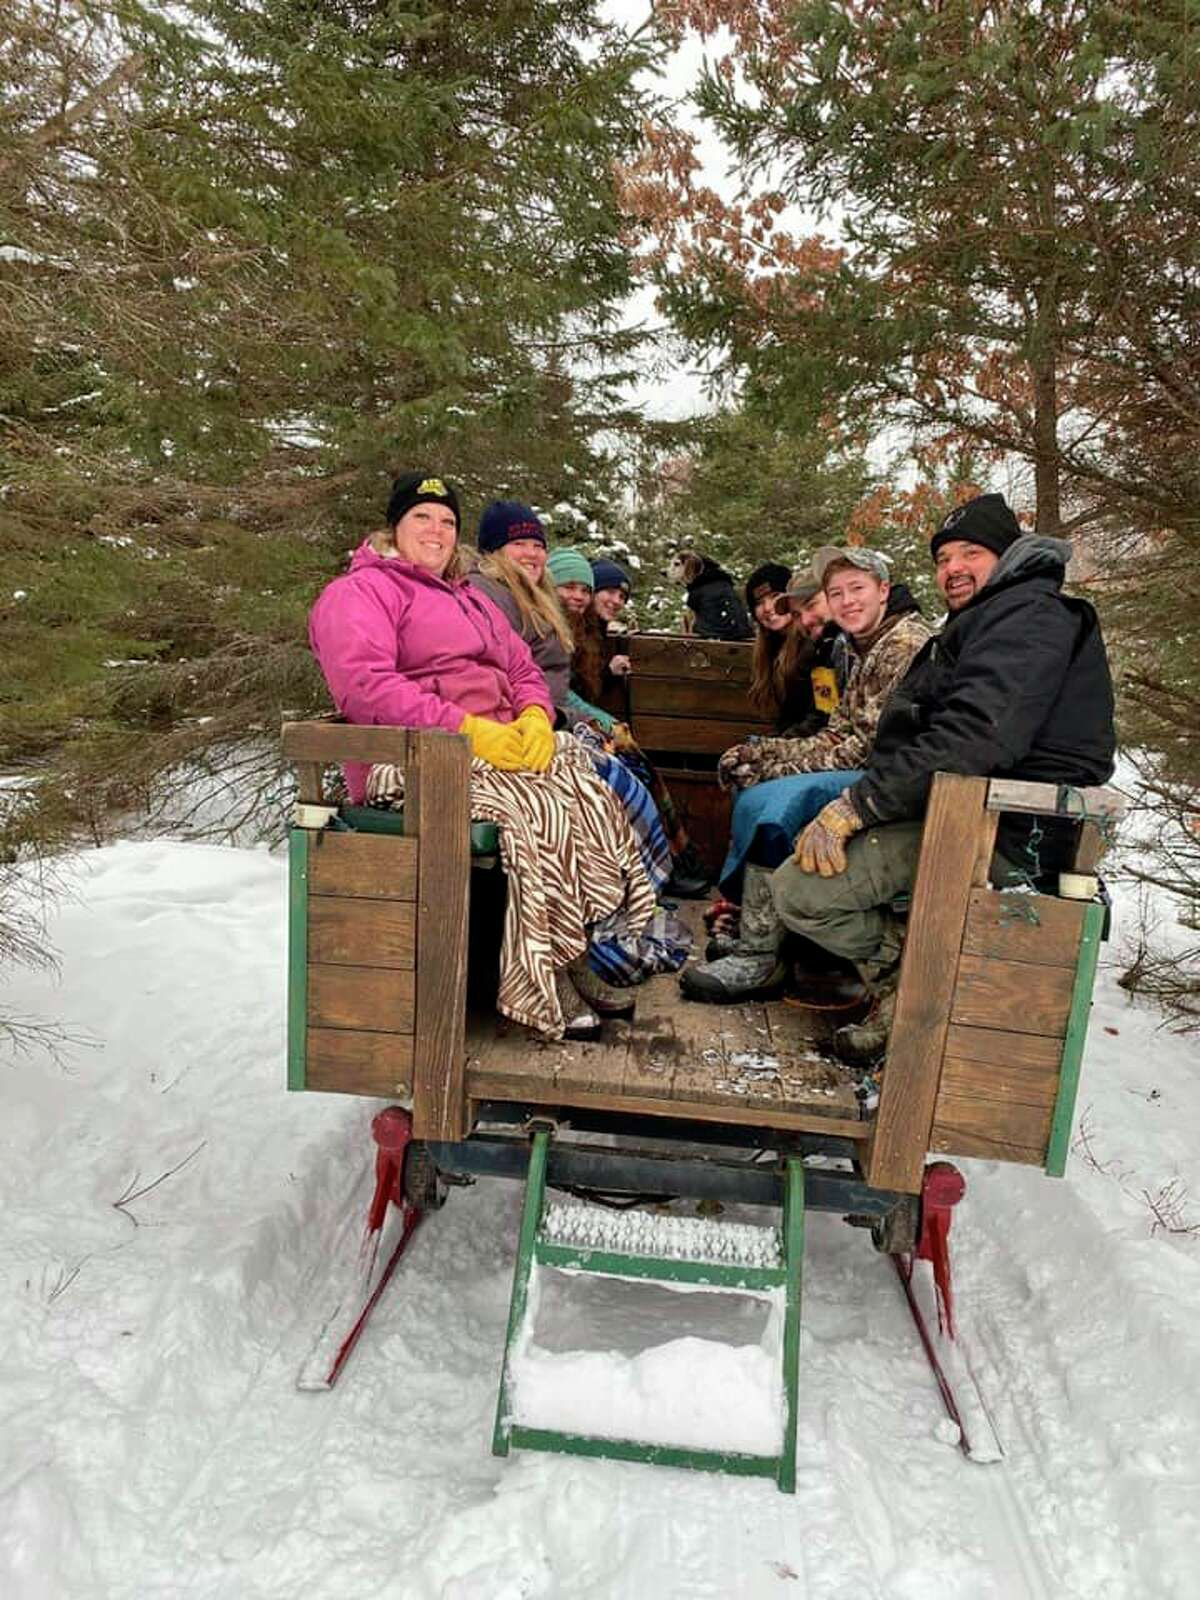 During the winter months, Mecosta County families can enjoy a sleigh ride at Four Green Fields. The farm also offers a warming area, complete with a firepit and warm drinks. (Courtesy photo)